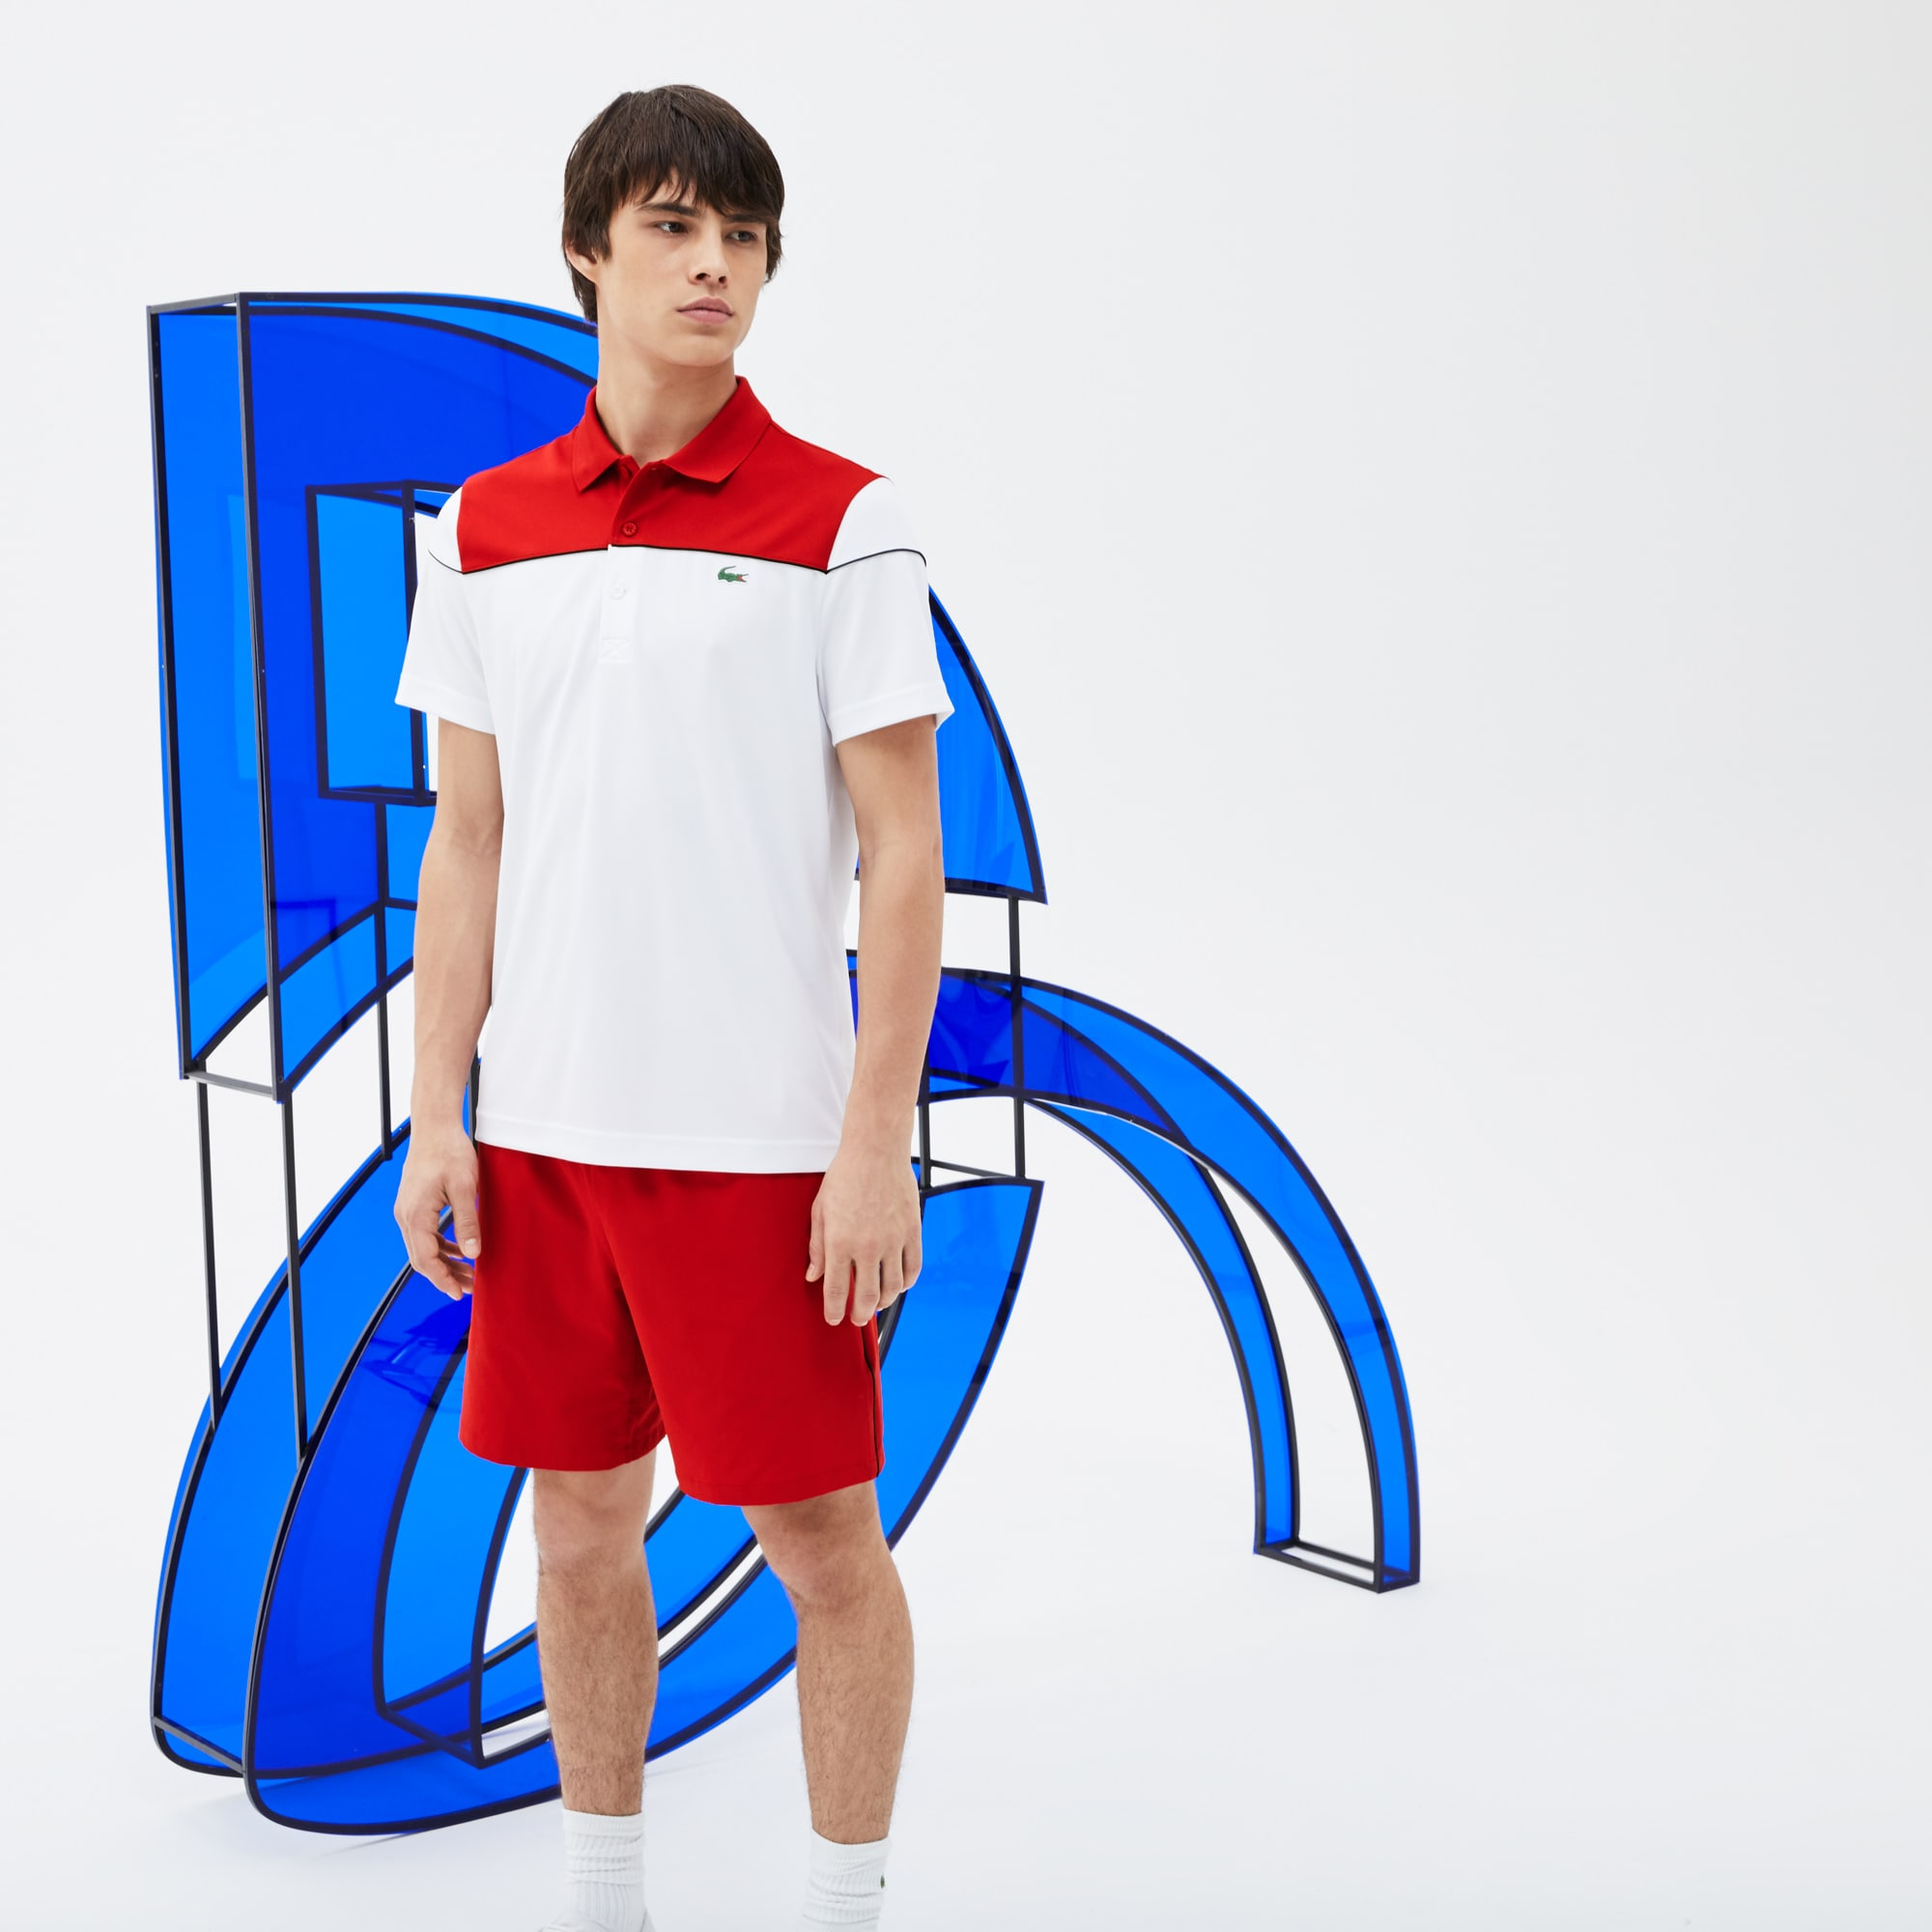 Men's SPORT Piped Stretch Technical Shorts - Novak Djokovic Supporter Collection